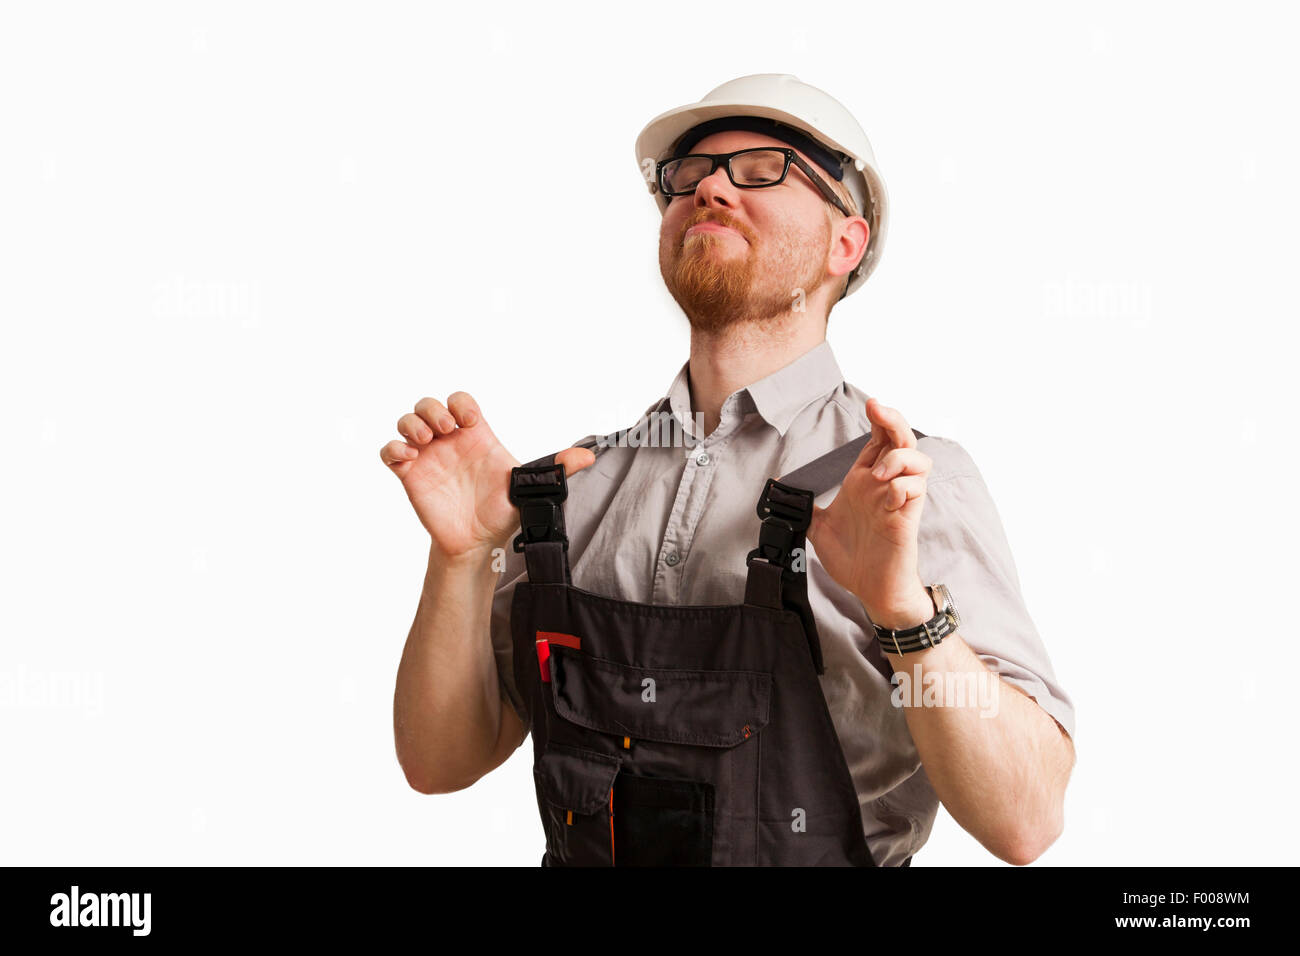 Very Proud Man in Construction Site Clothes Stock Photo